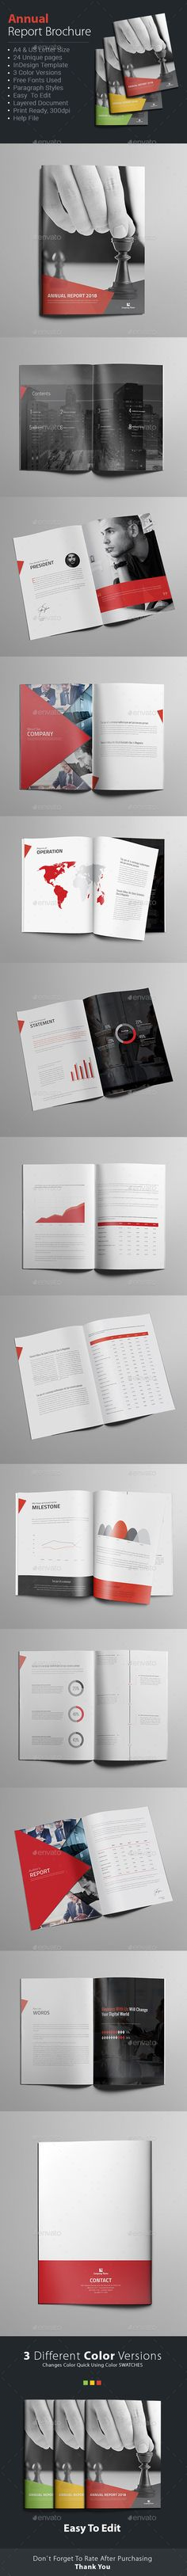 Annual Report Brochure Colors, Adobe and Texts - business annual report template